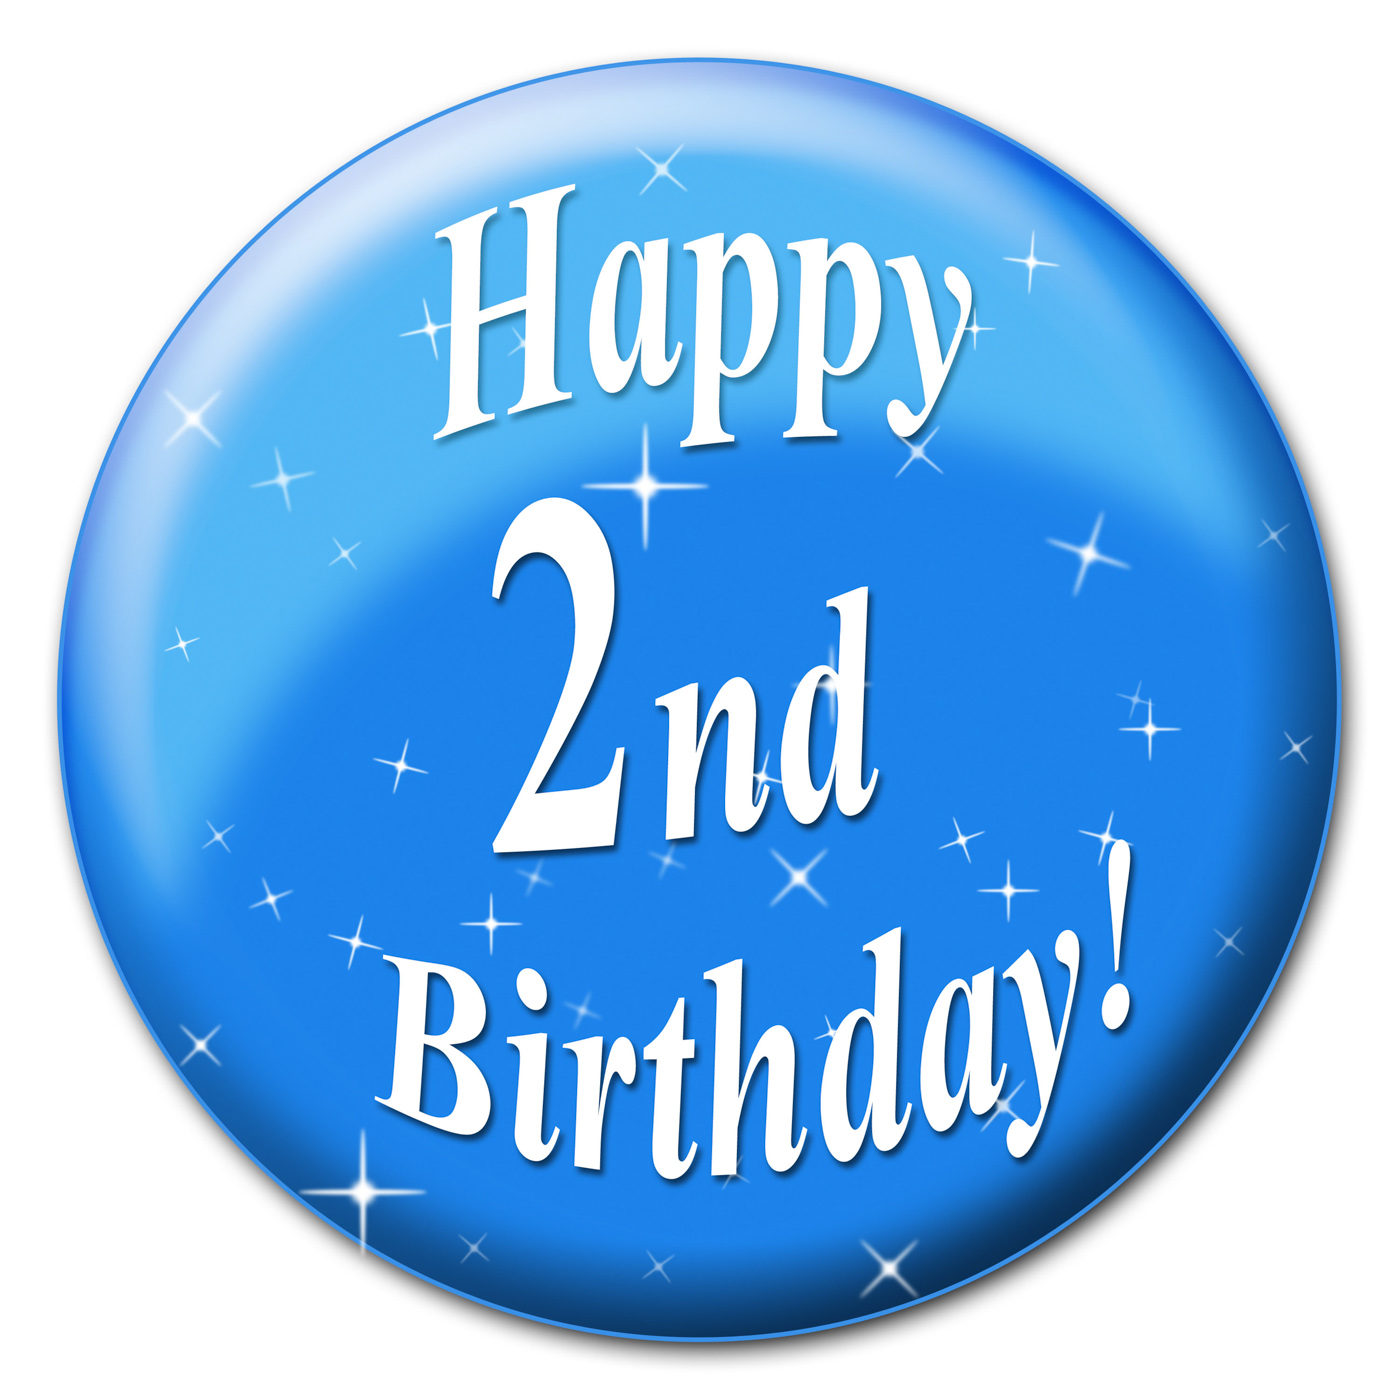 Happy second birthday indicates happiness congratulation and party photo